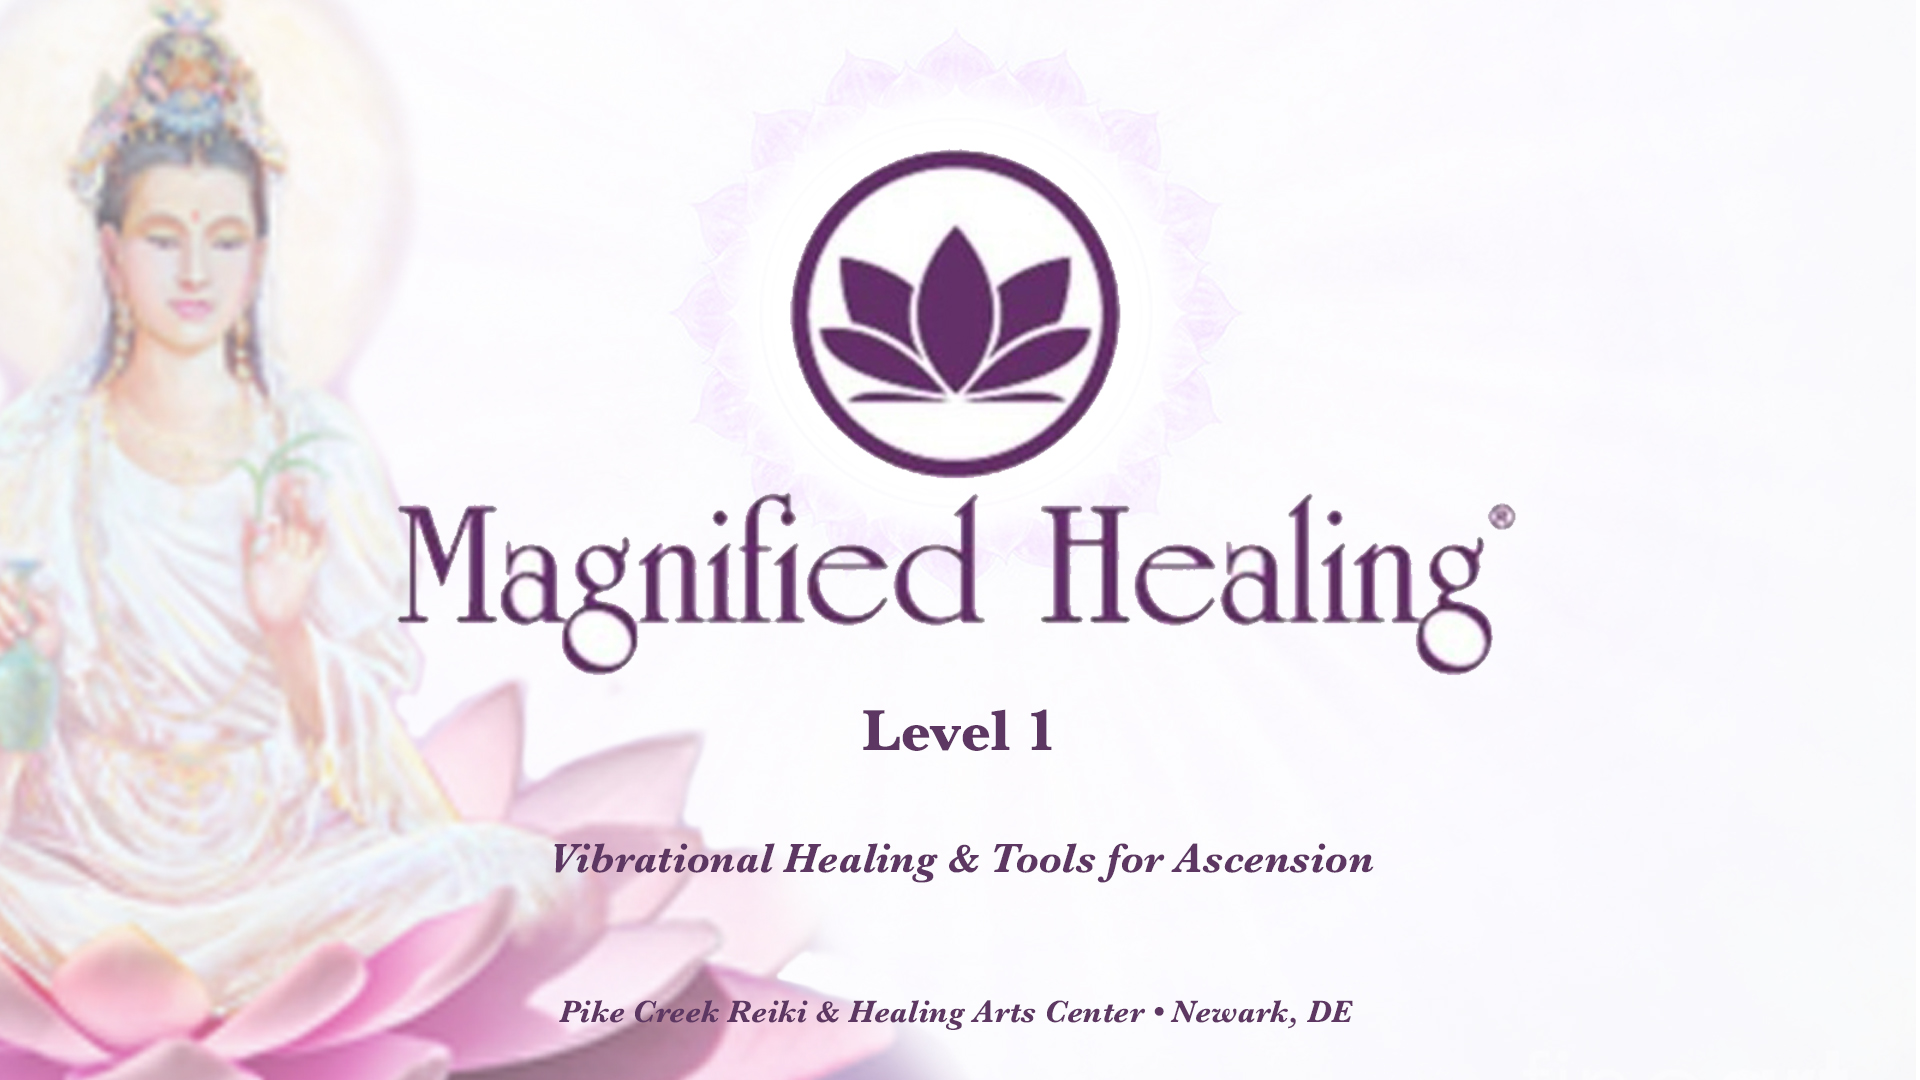 Magnified Healing PhasePCR.jpg